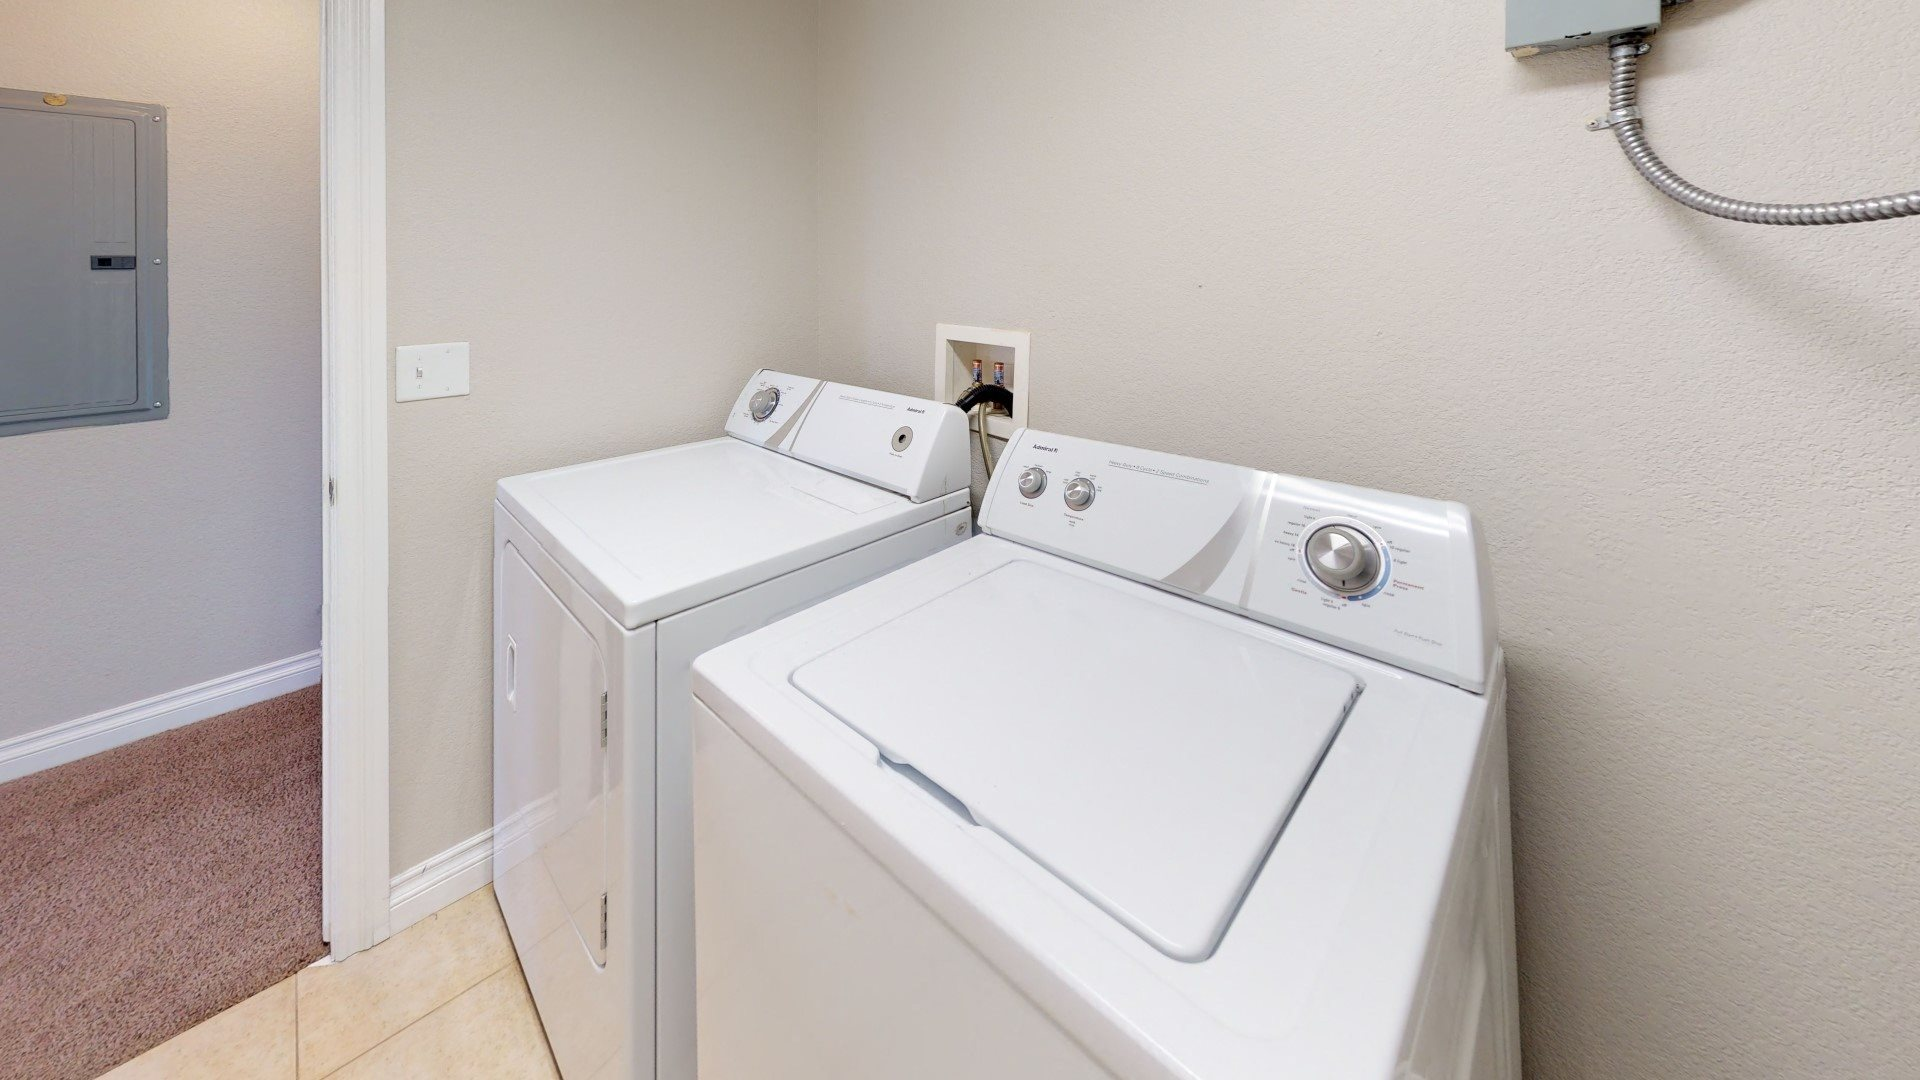 In-unit laundry facilities